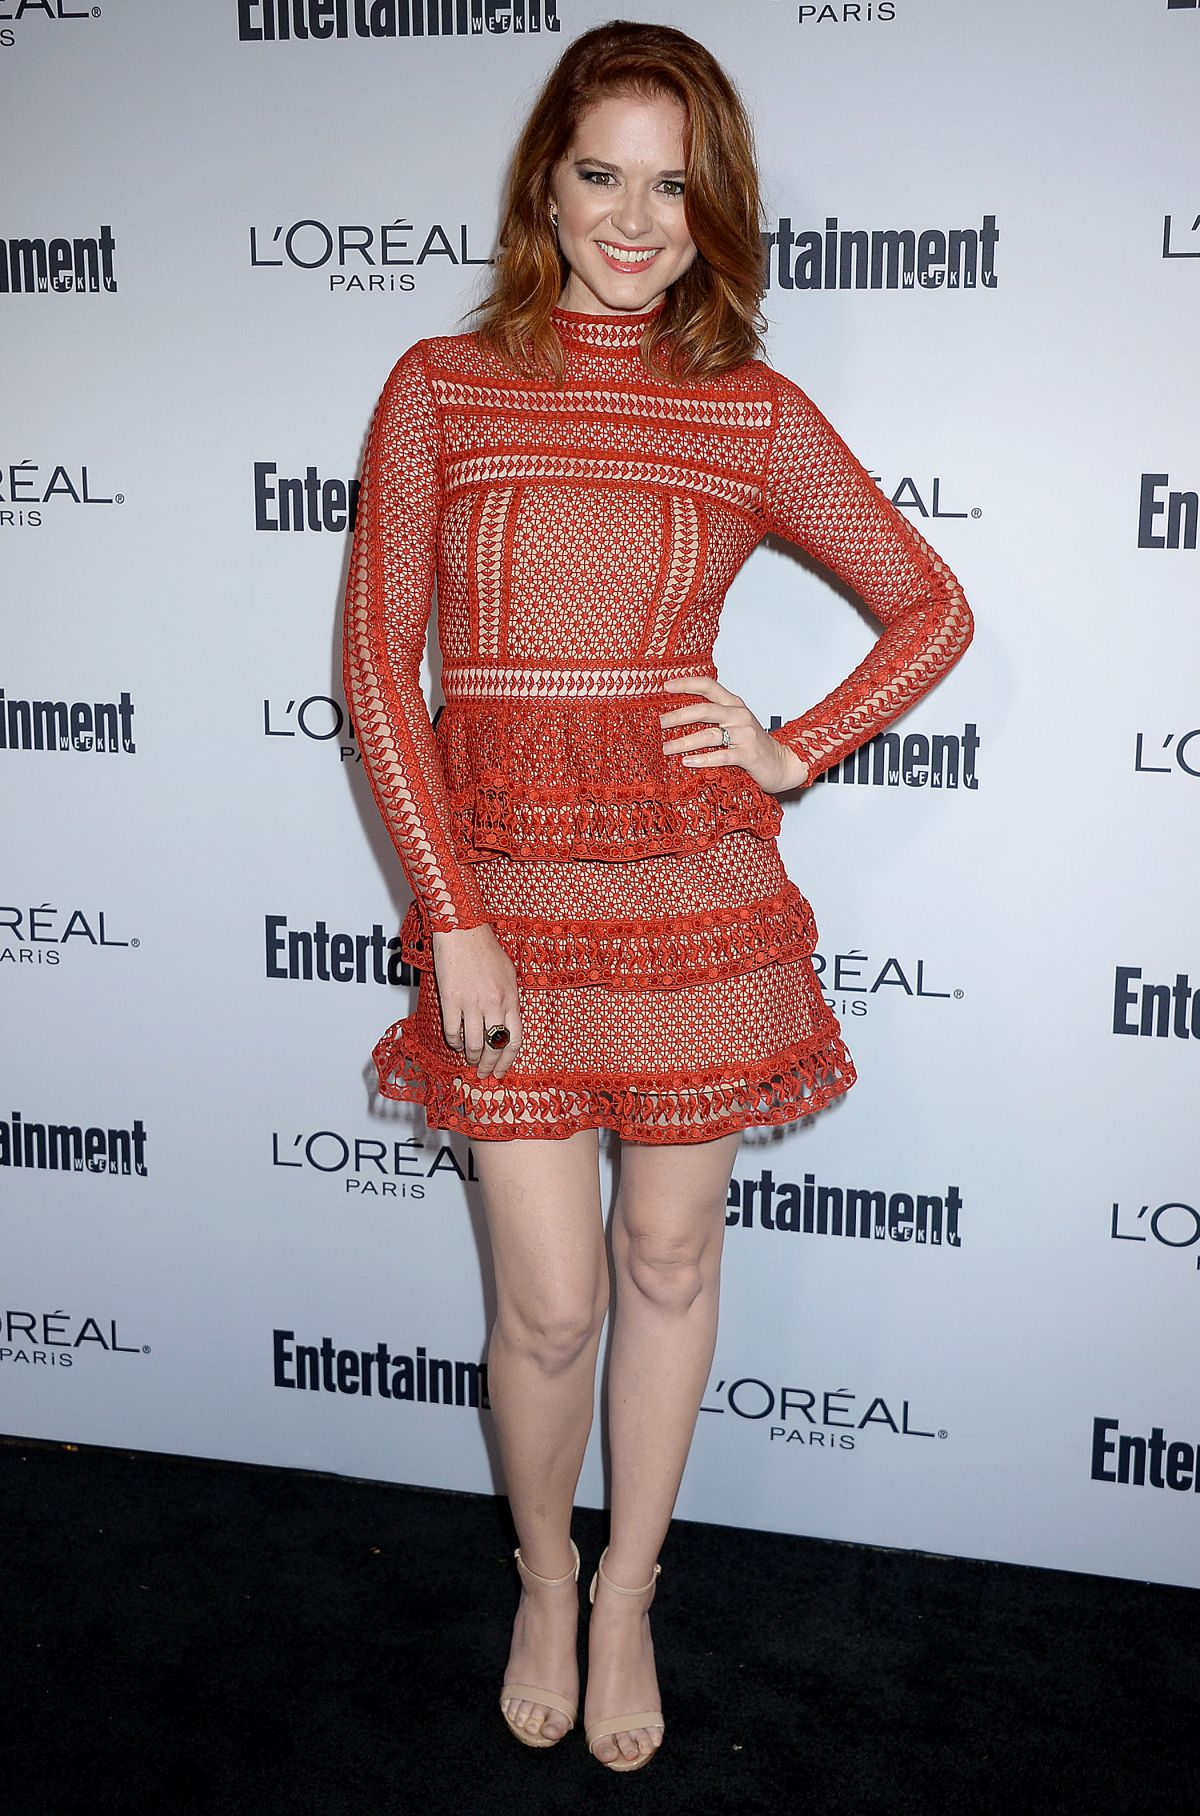 SARAH DREW at Entertainment Weekly 2016 Pre-emmy Party in Los Angeles 09/16/2016